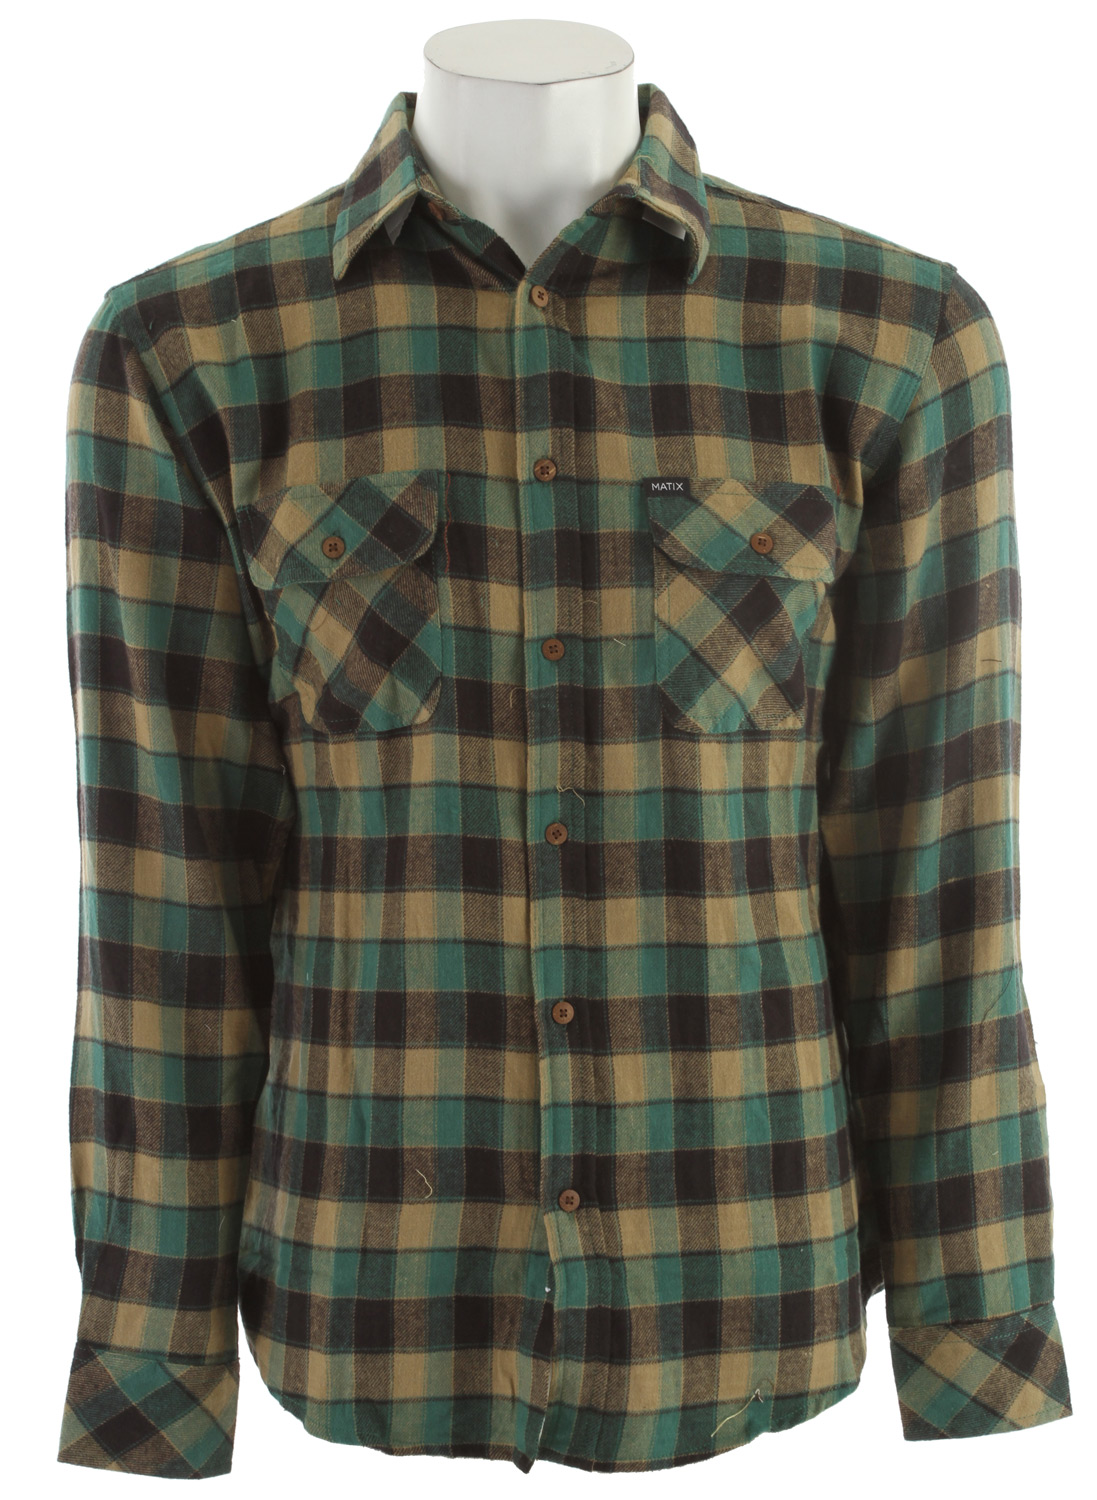 Key Features of the Matix Americana Flannel: 100% COTTON Lightweight brushed flannel with dual chest pockets, wood buttons. Slim Fit. Matix/Marc Johnson signature labeling. AMERICANA MARC JOHNSON SIGNATURE - $37.95